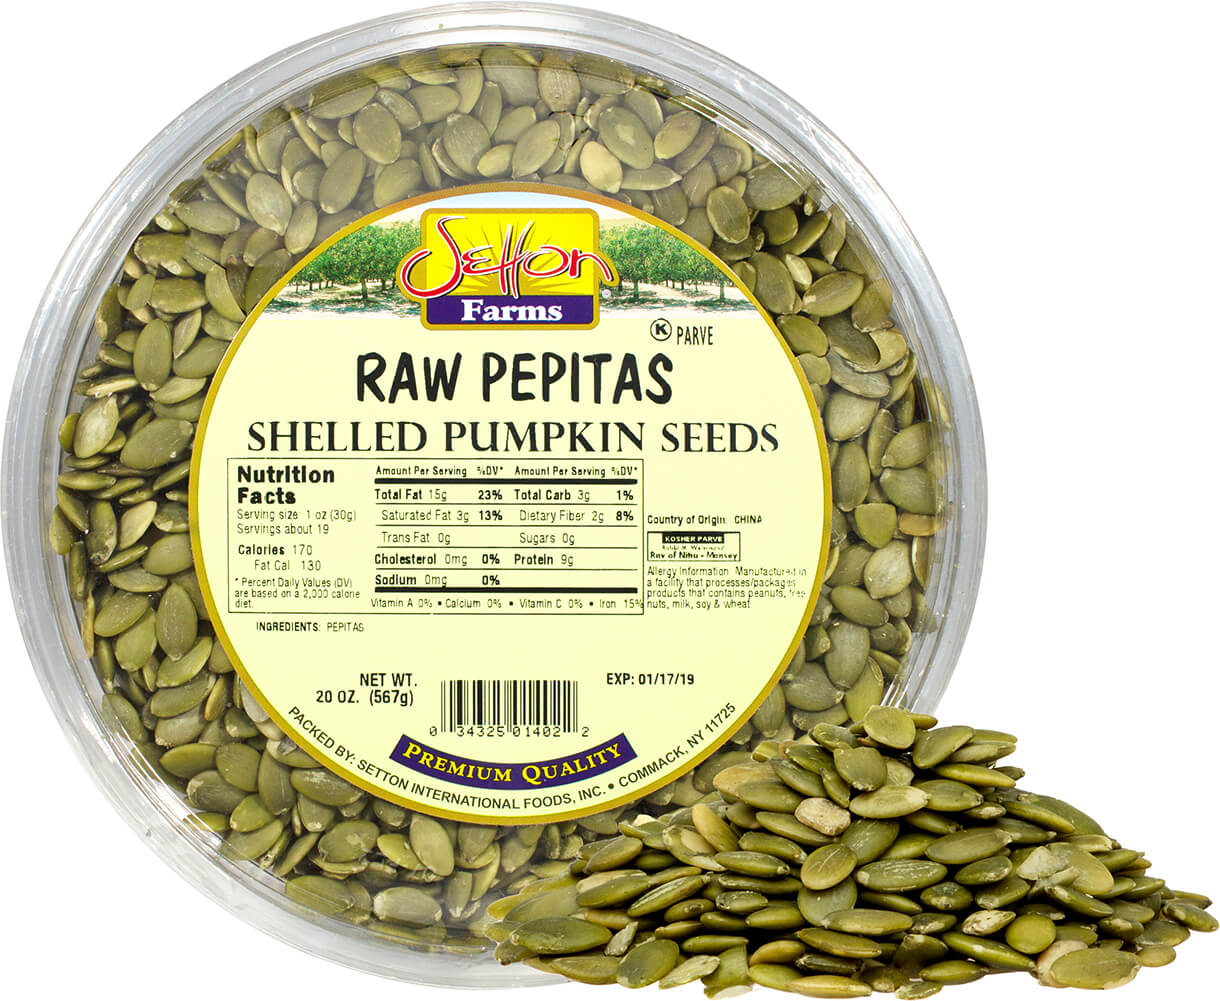 Raw Pepitas (Pumpkin Seeds)